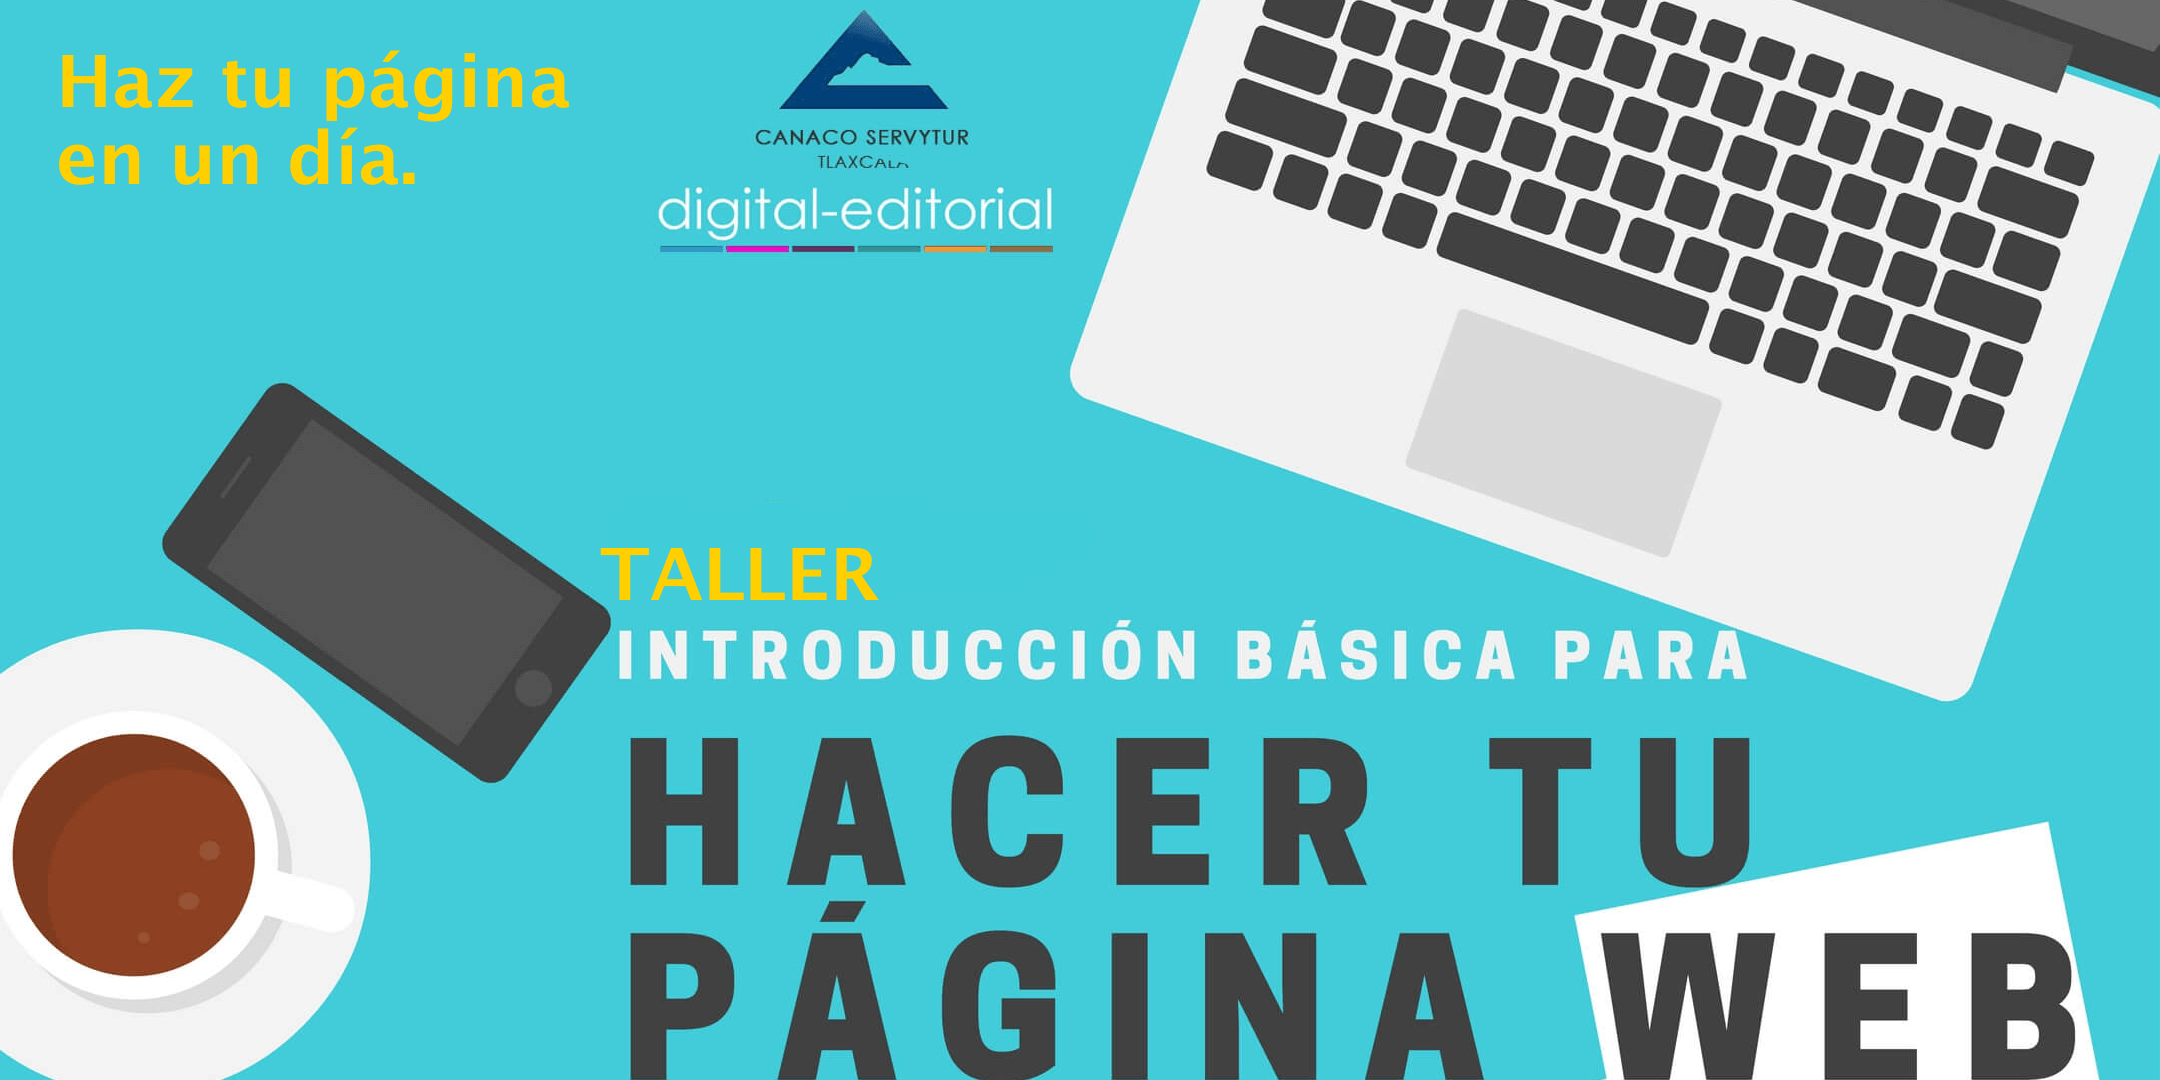 taller-hacer-pagia-web